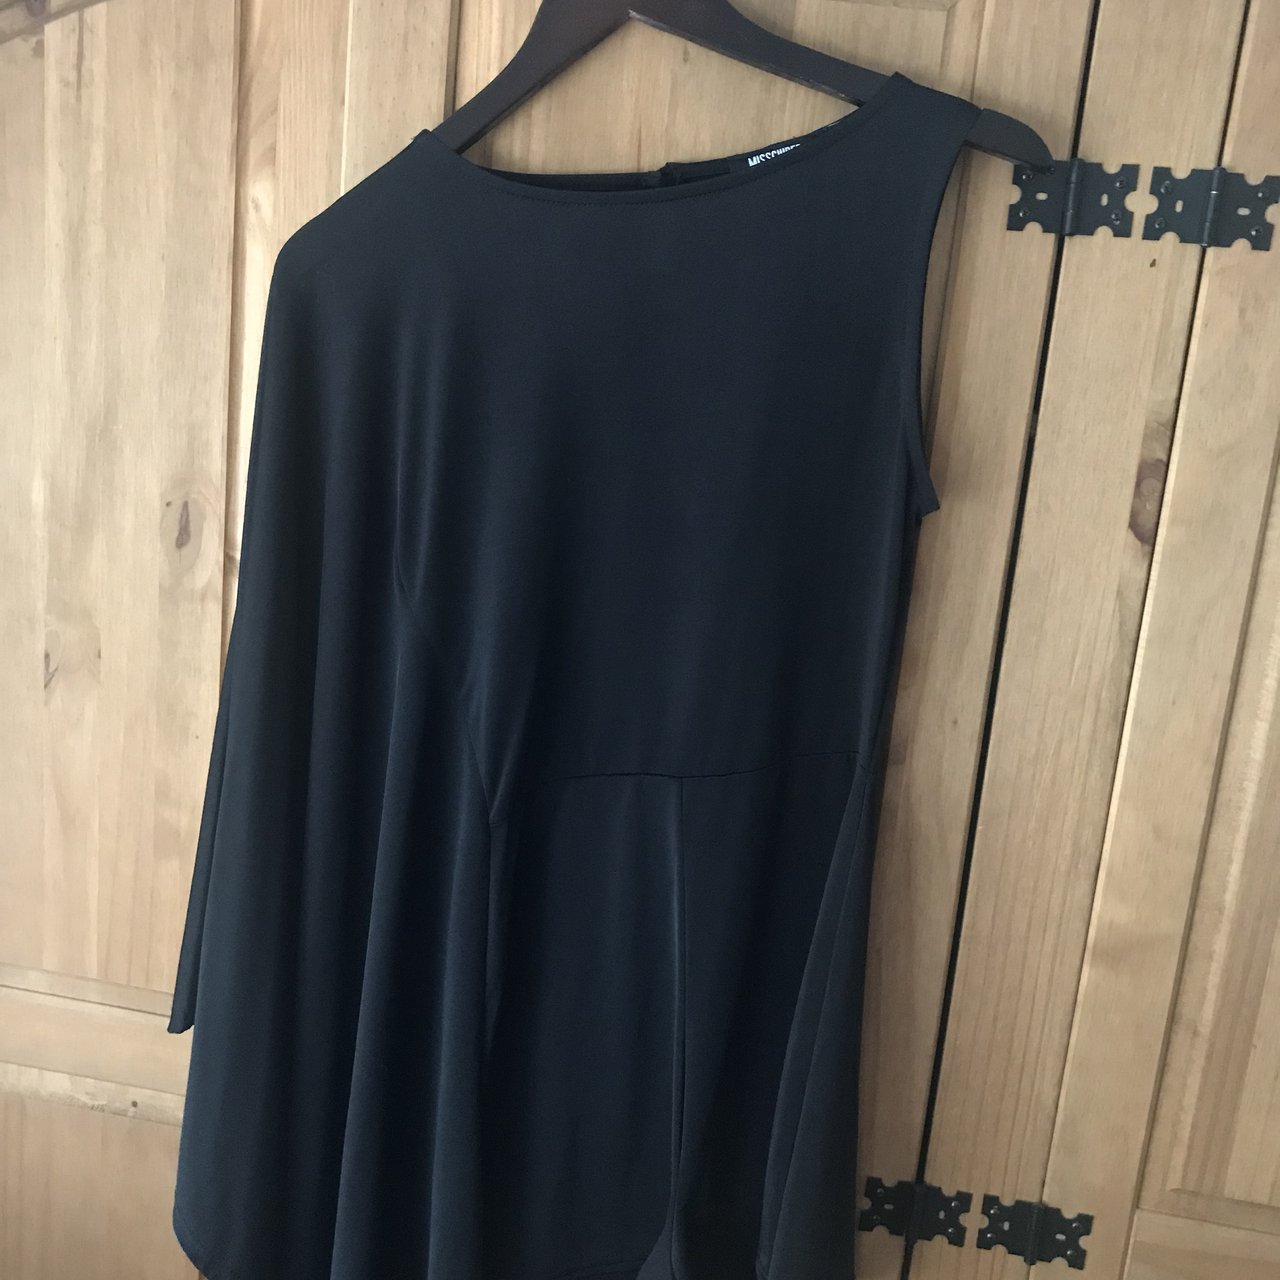 cc2c66b2ecf4 Misguided size Small playsuit one